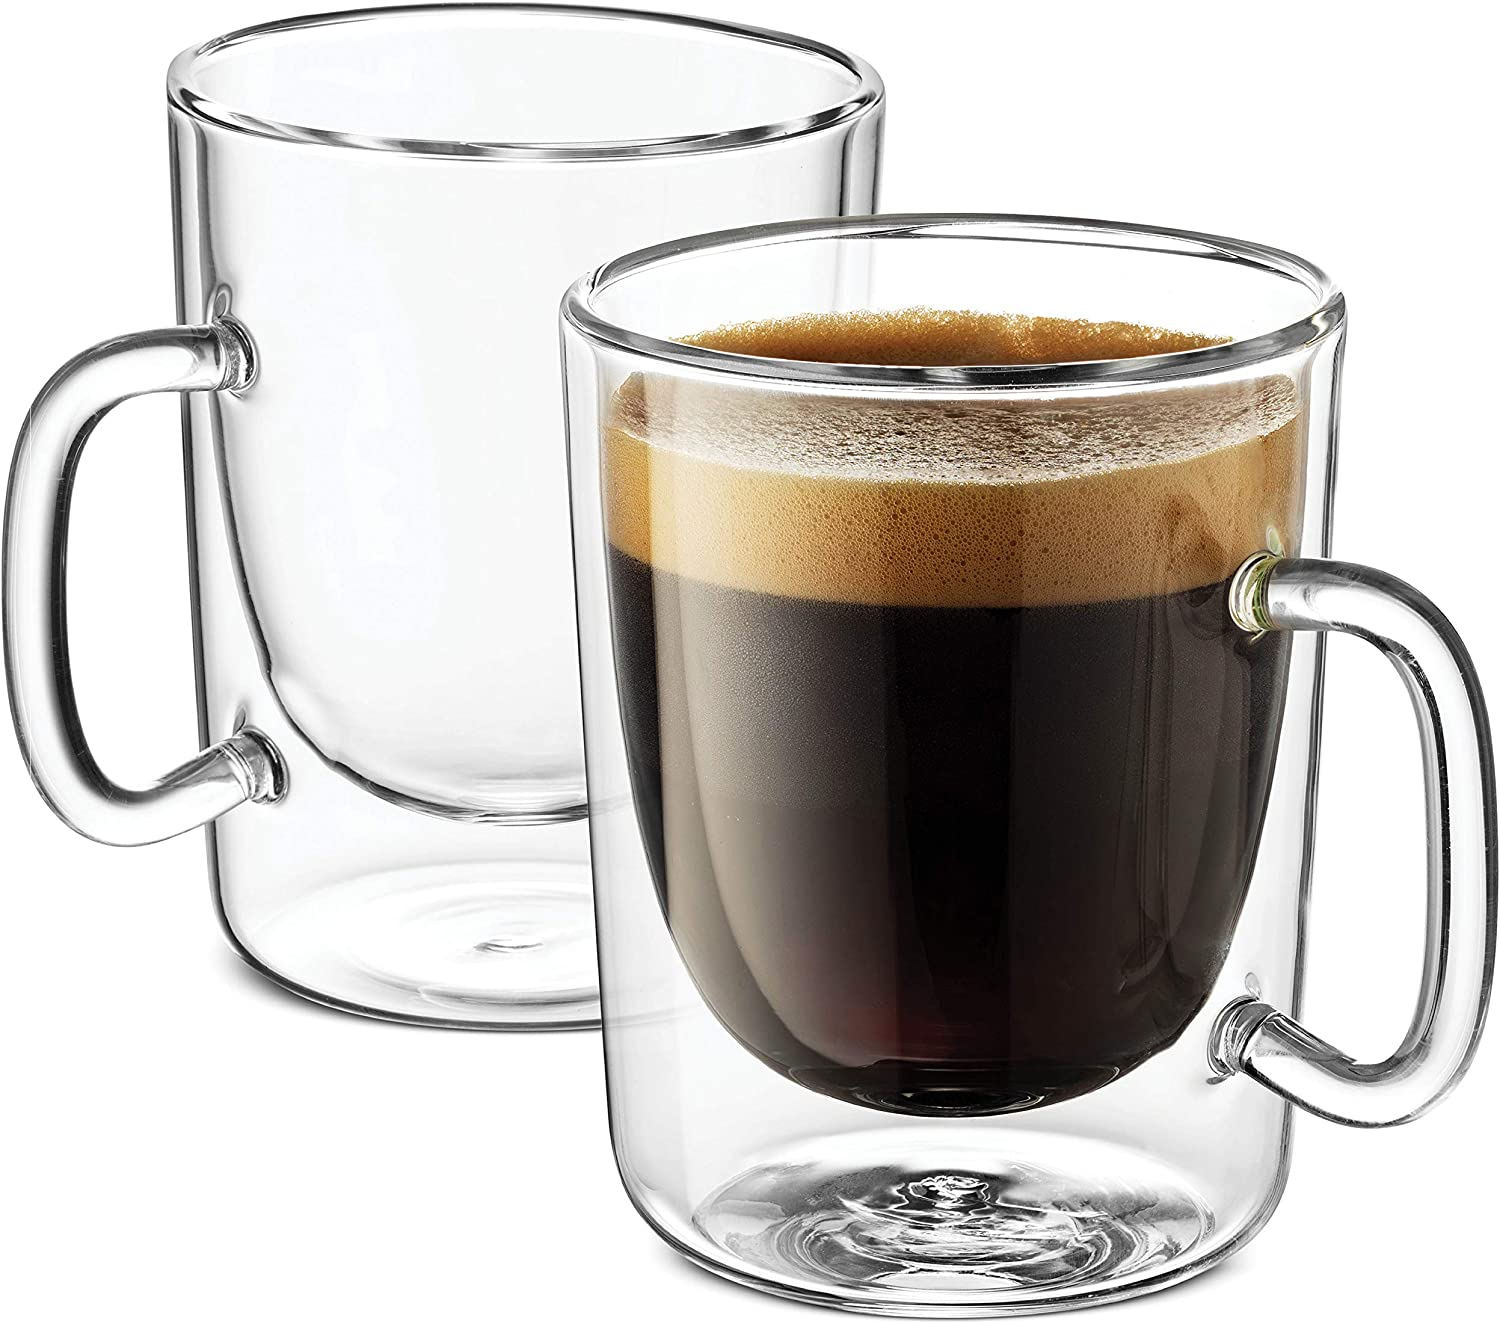 Luigi Bormioli Double Walled Glass Coffee Mugs - 10¼ Ounce (2 Pack) Double wall glass Insulated Espresso Cups for Cappucino, Latte, Perfect Tea Glasses Keeps Hot - Cold Beverages, Oven -Microwave safe